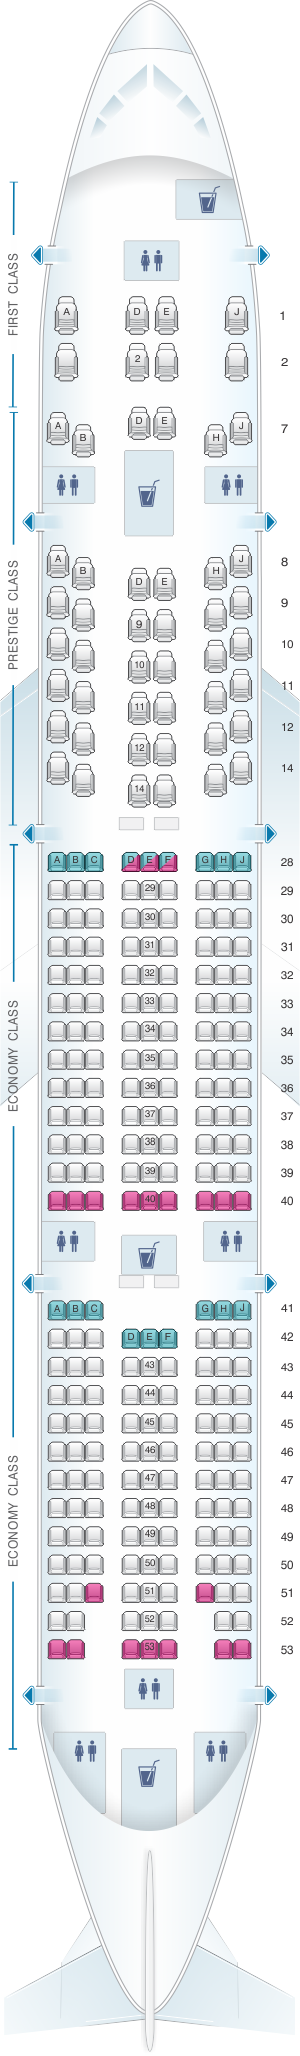 Seat map for Korean Air Boeing B777 300ER 277PAX